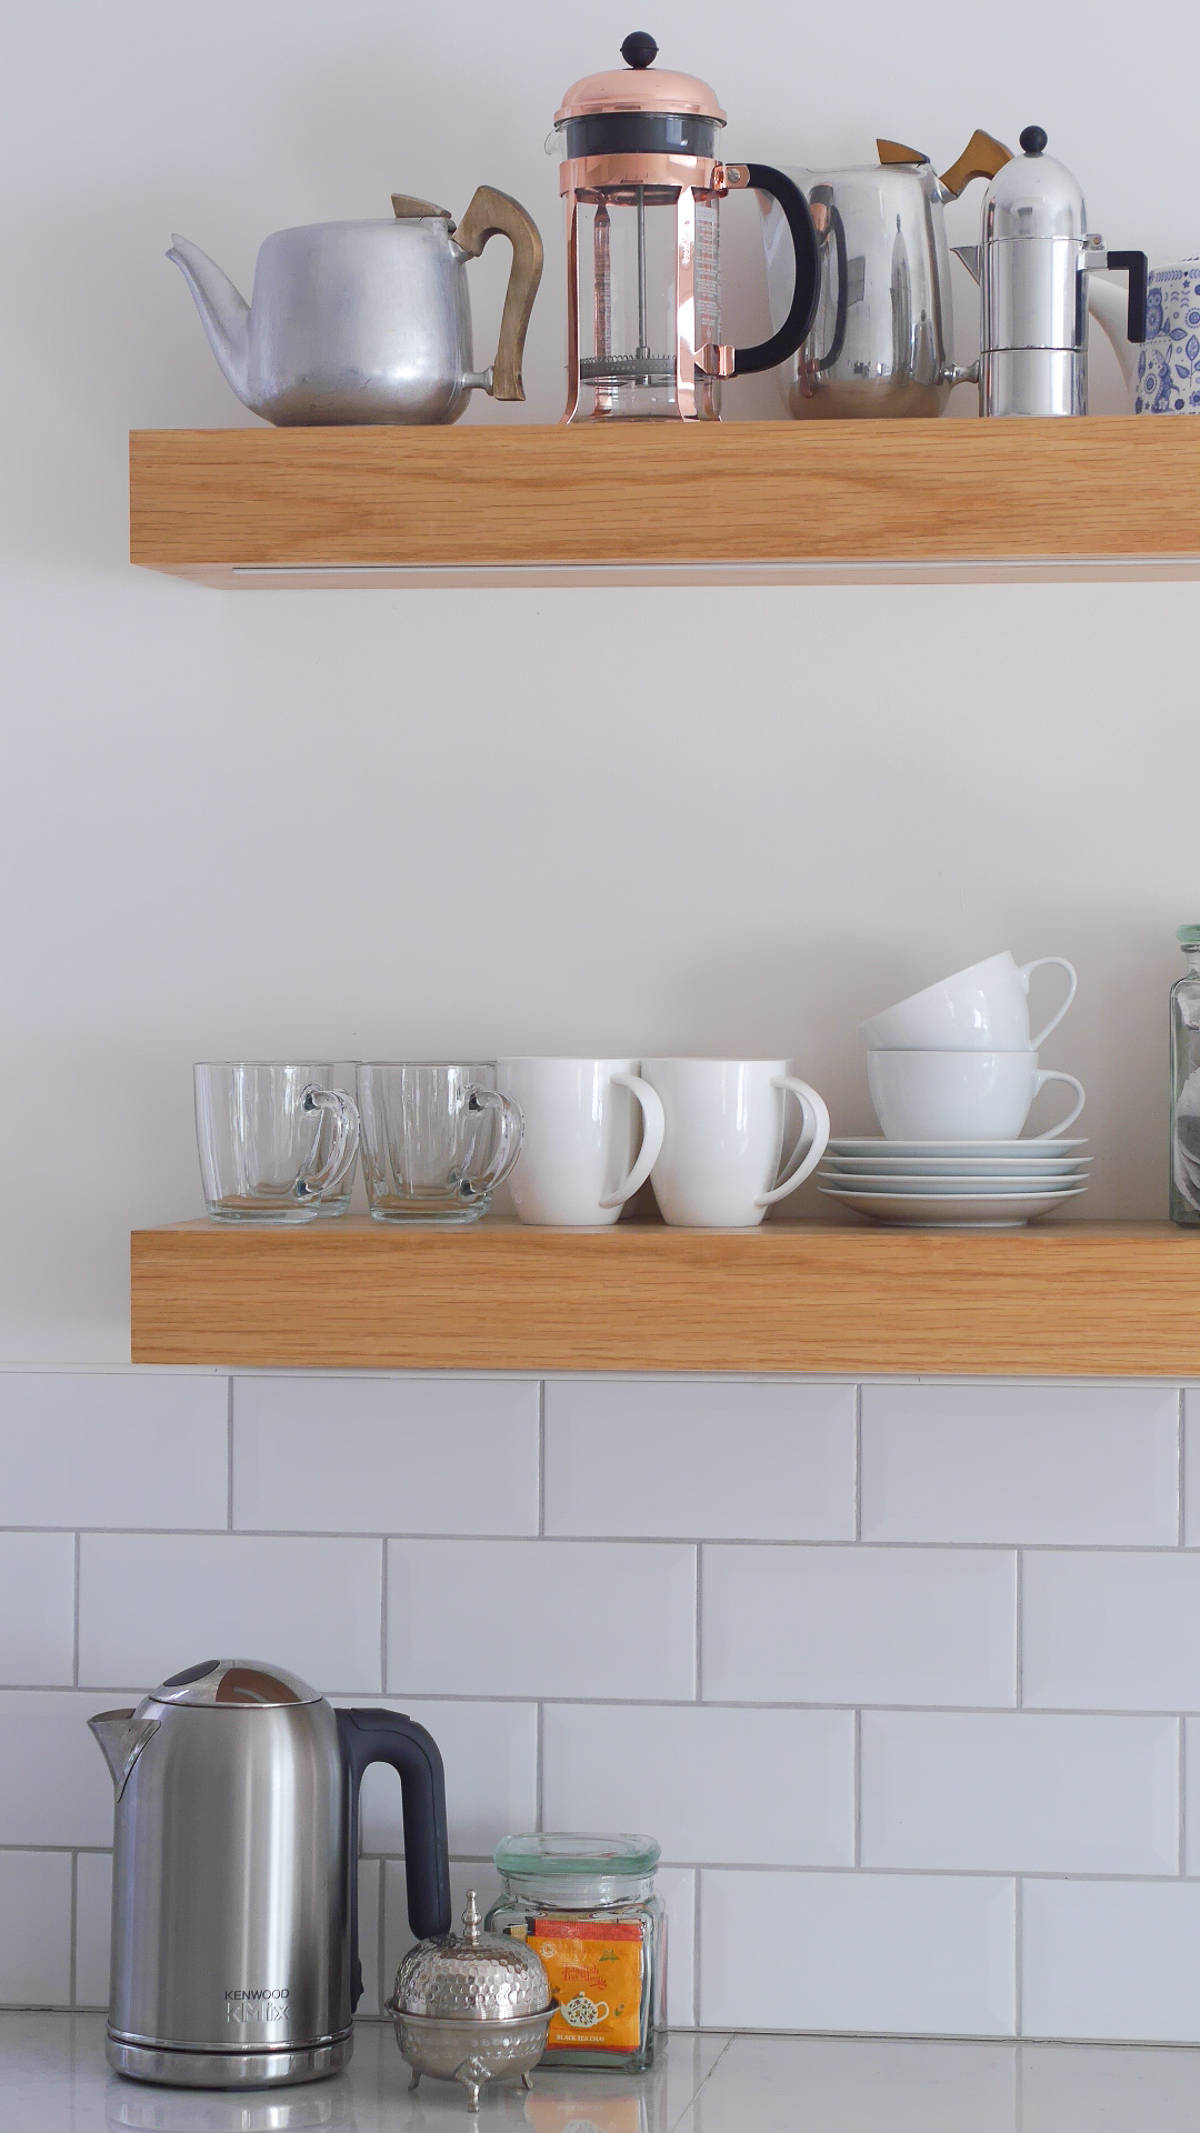 3 ways to style open kitchen shelves-11